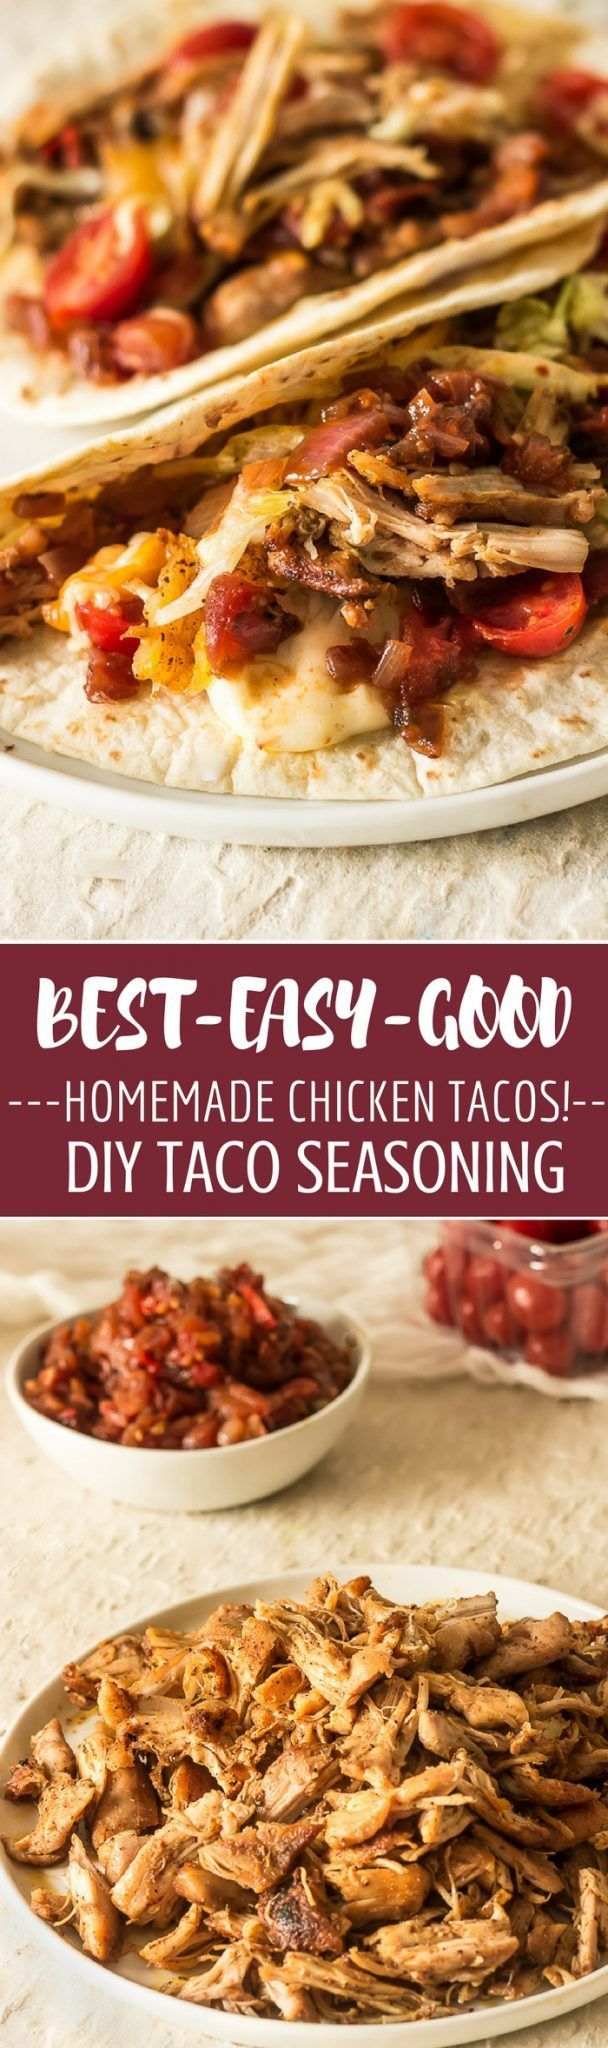 Photo of Chicken Tacos and a Taco Seasoning Recipe